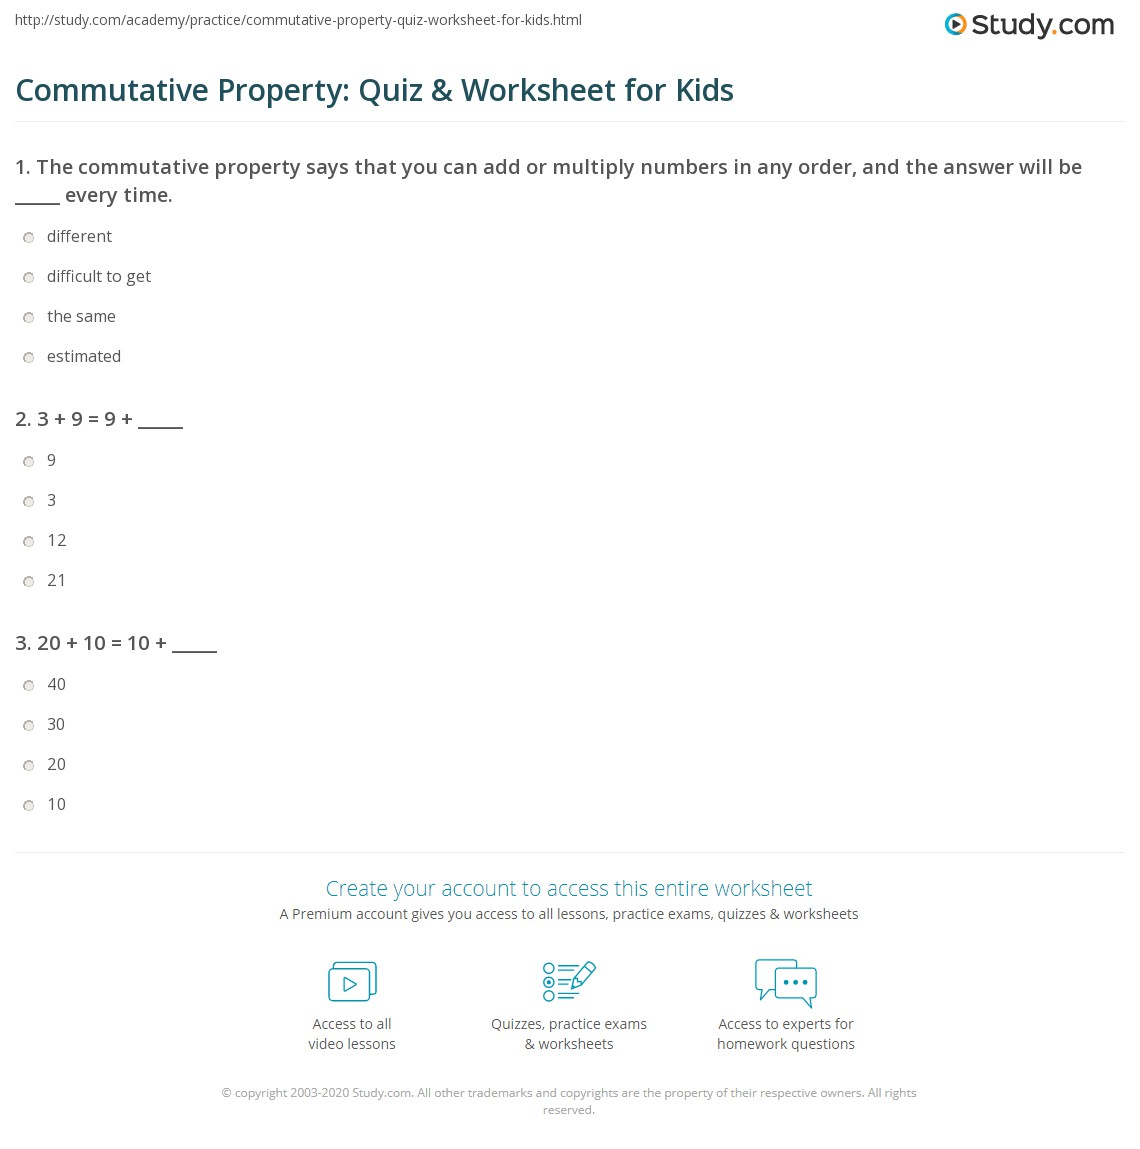 Worksheet 595800 Commutative Property of Multiplication – Associative Property of Multiplication Worksheet